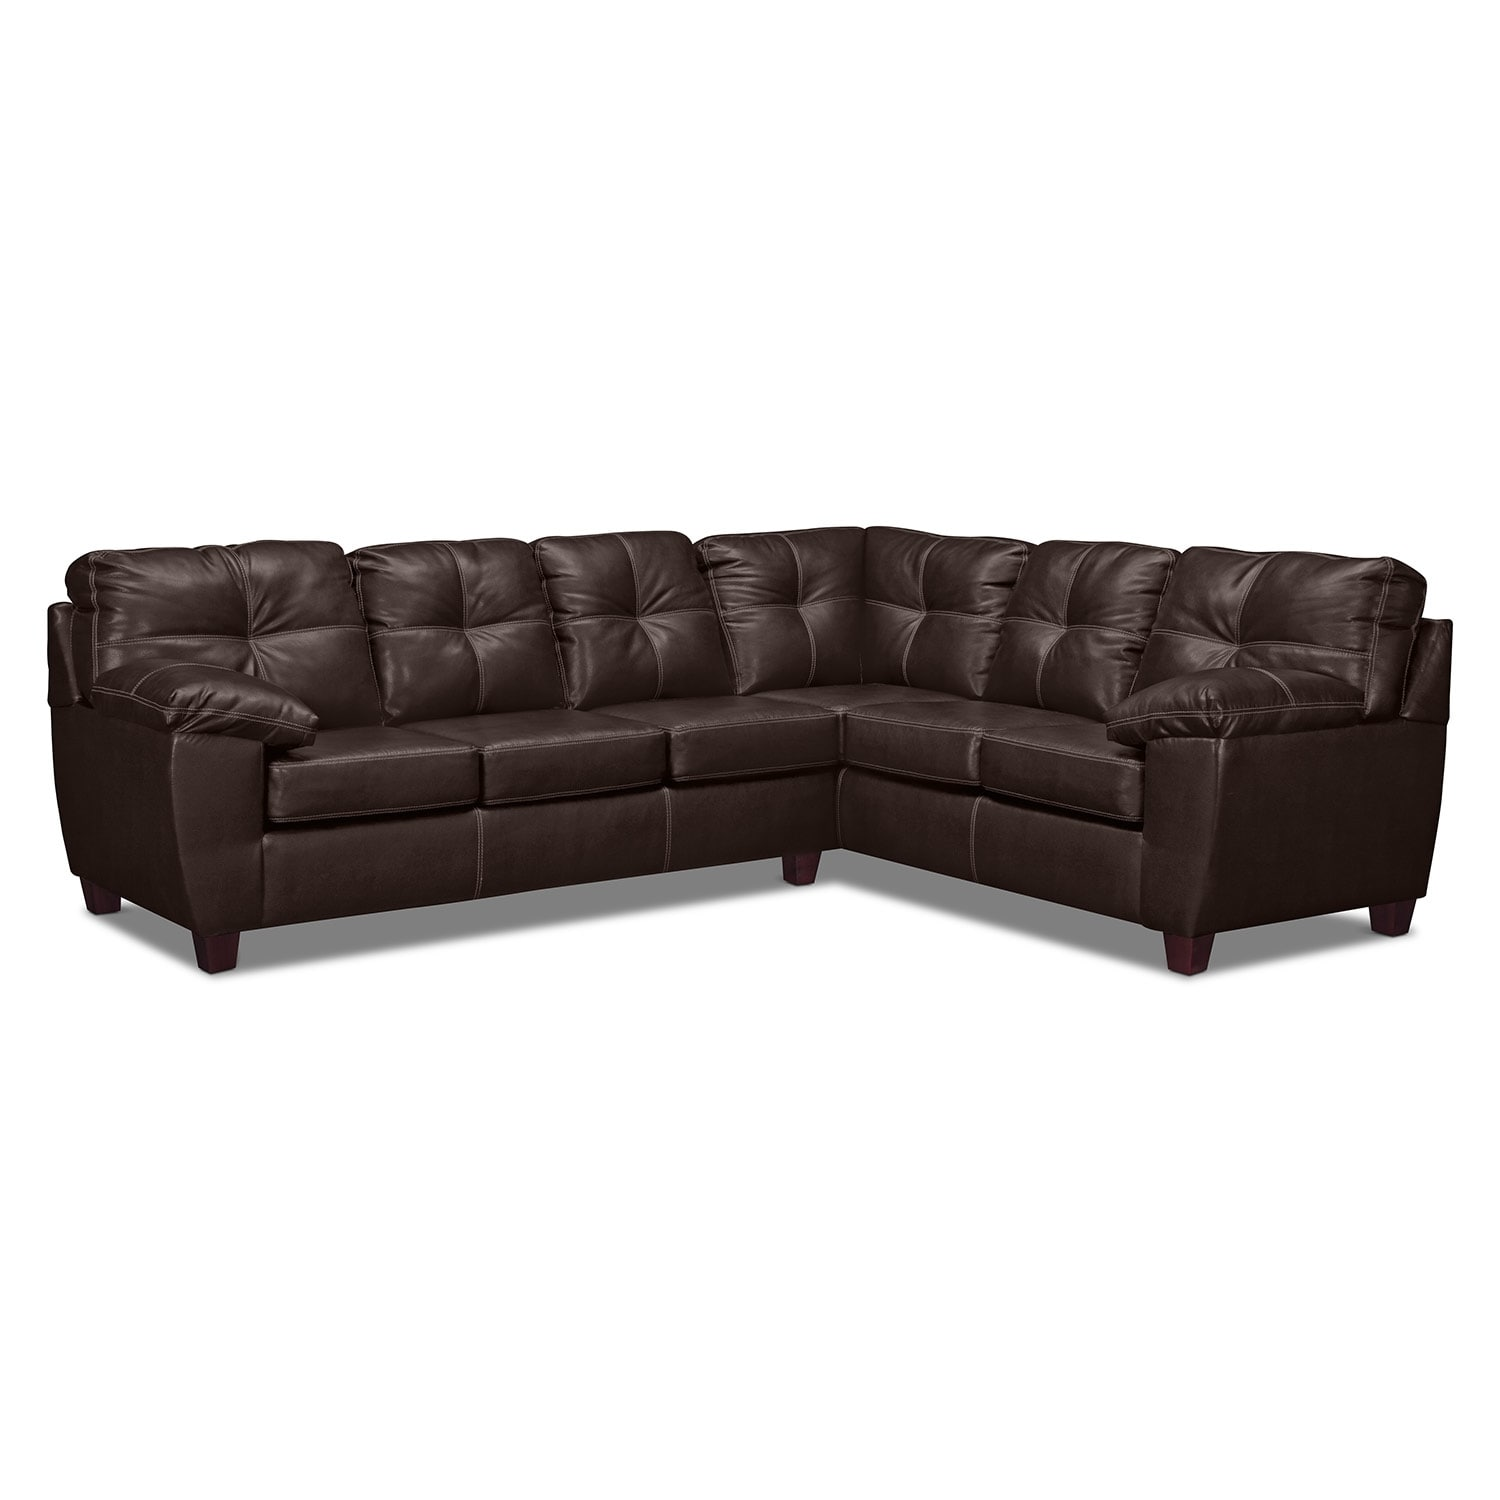 Rialto 2-Piece Sectional with Right-Facing Corner Sofa - Brown